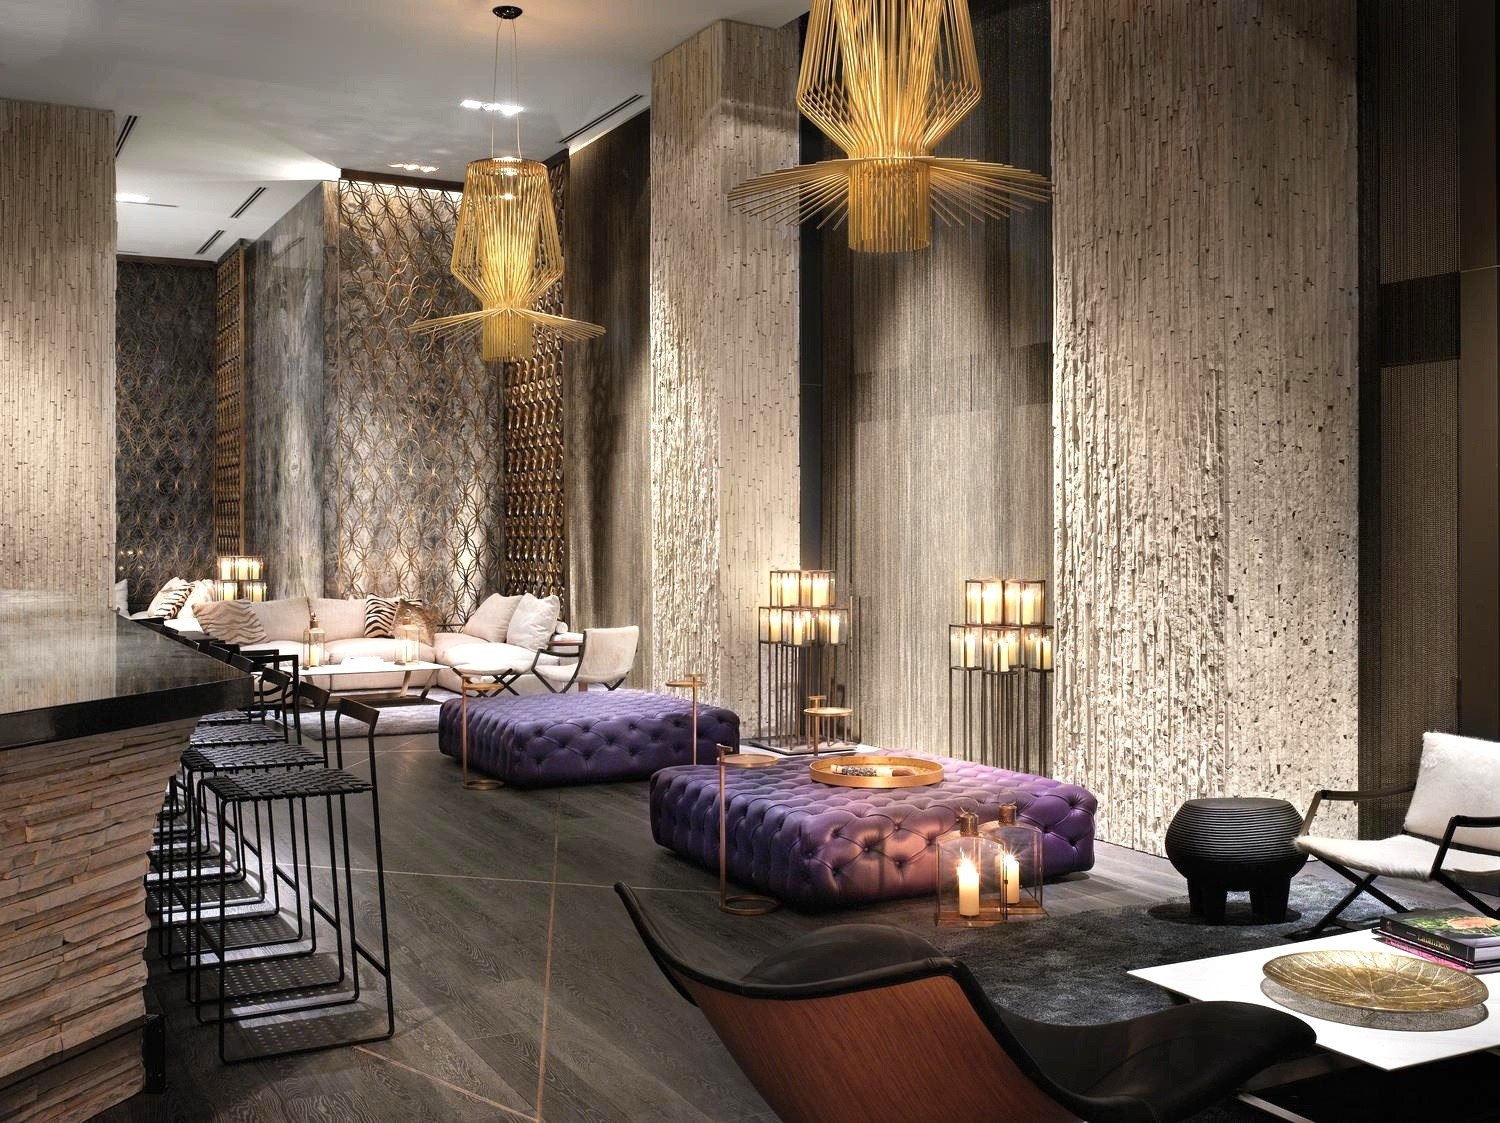 Living room bars in south beach miami for Hotel design paris spa